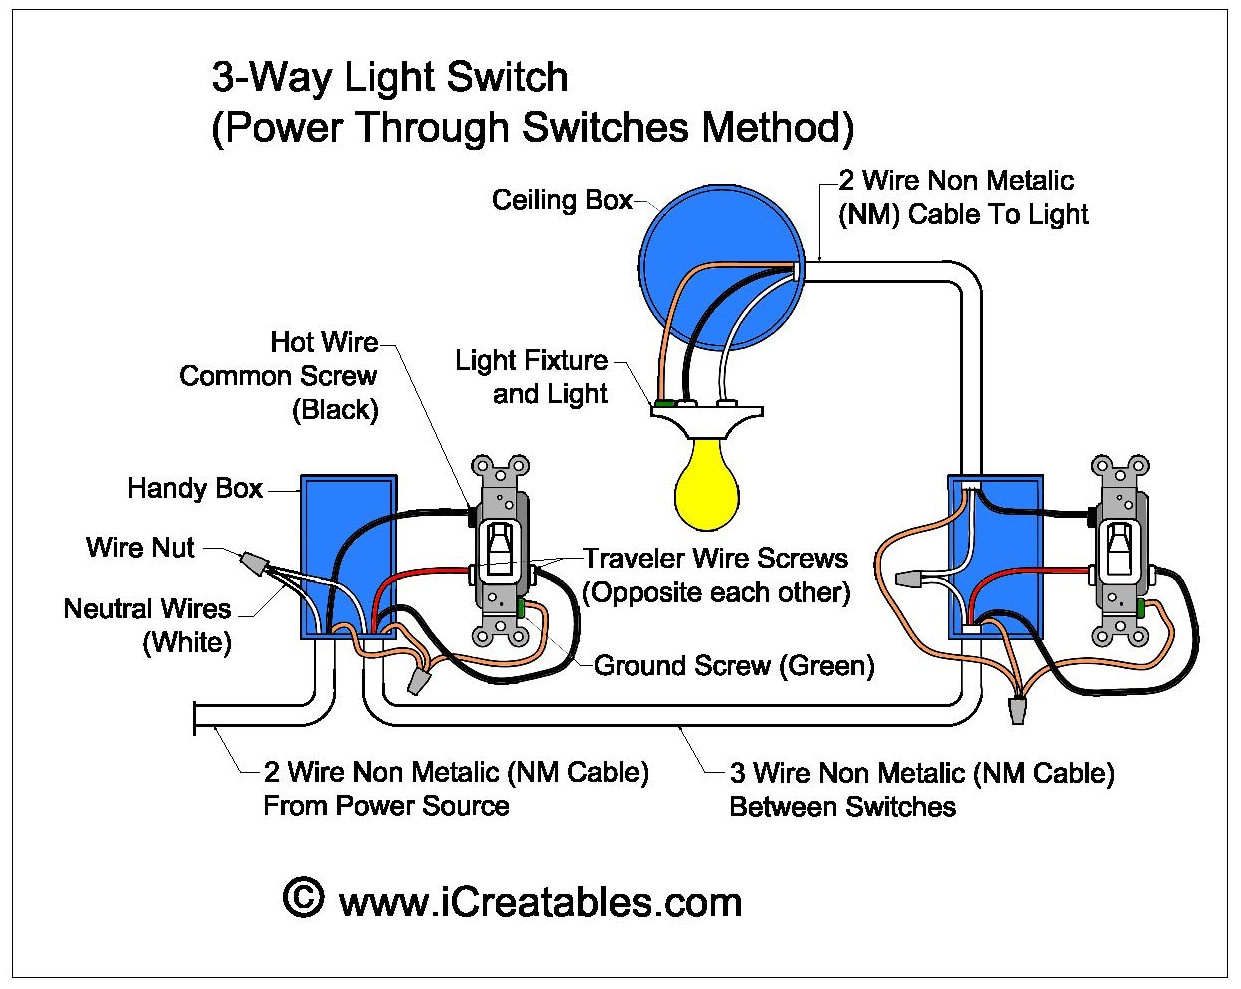 Shed wiring diagrams circuit diagram symbols shed wiring diagrams images gallery cheapraybanclubmaster Choice Image